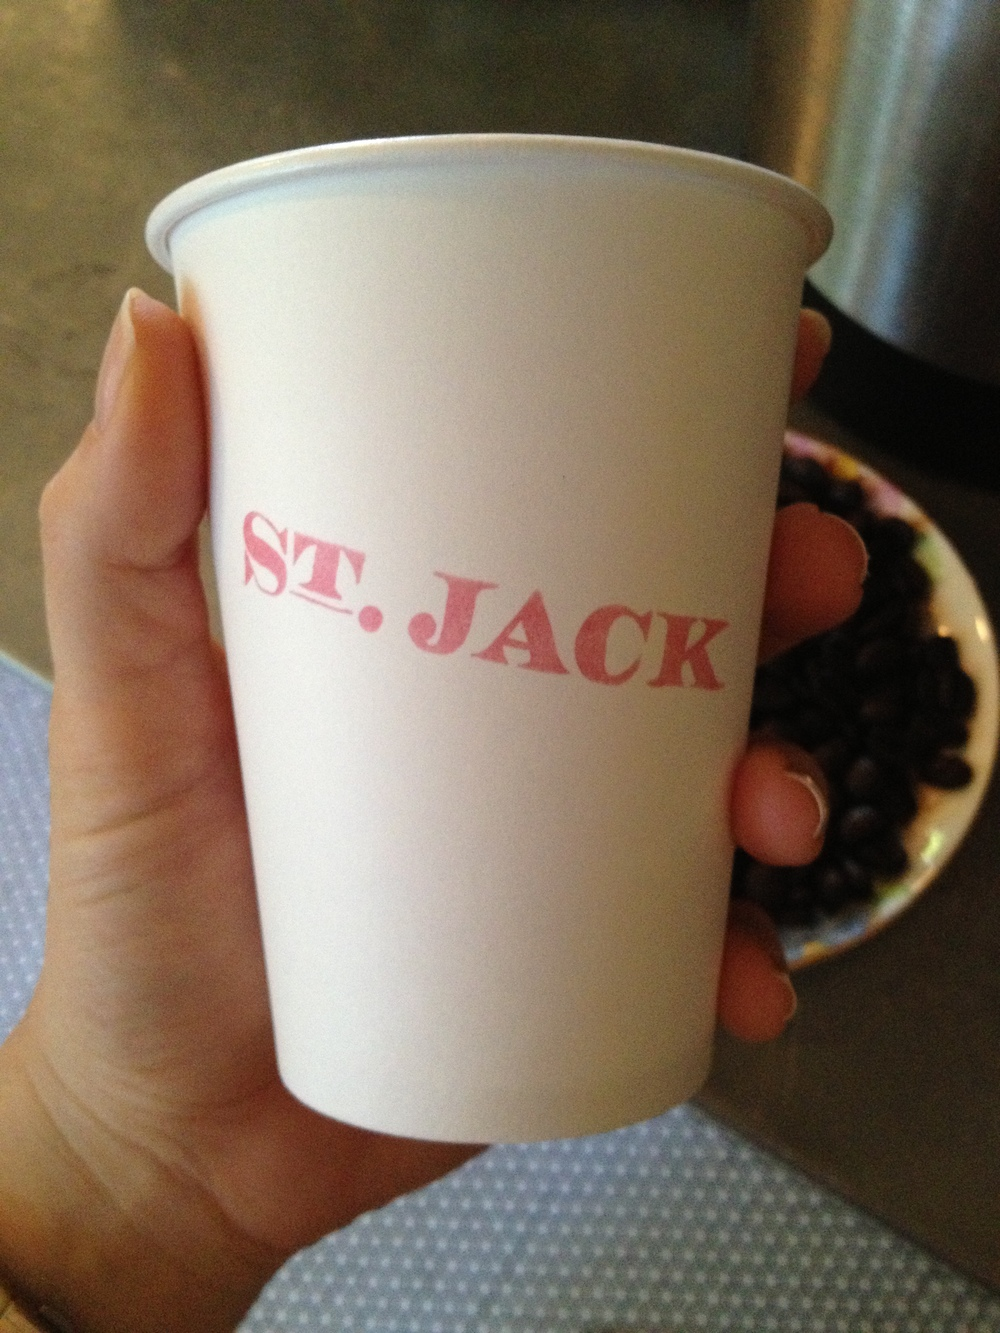 Great coffee at Patisserie St. Jack.